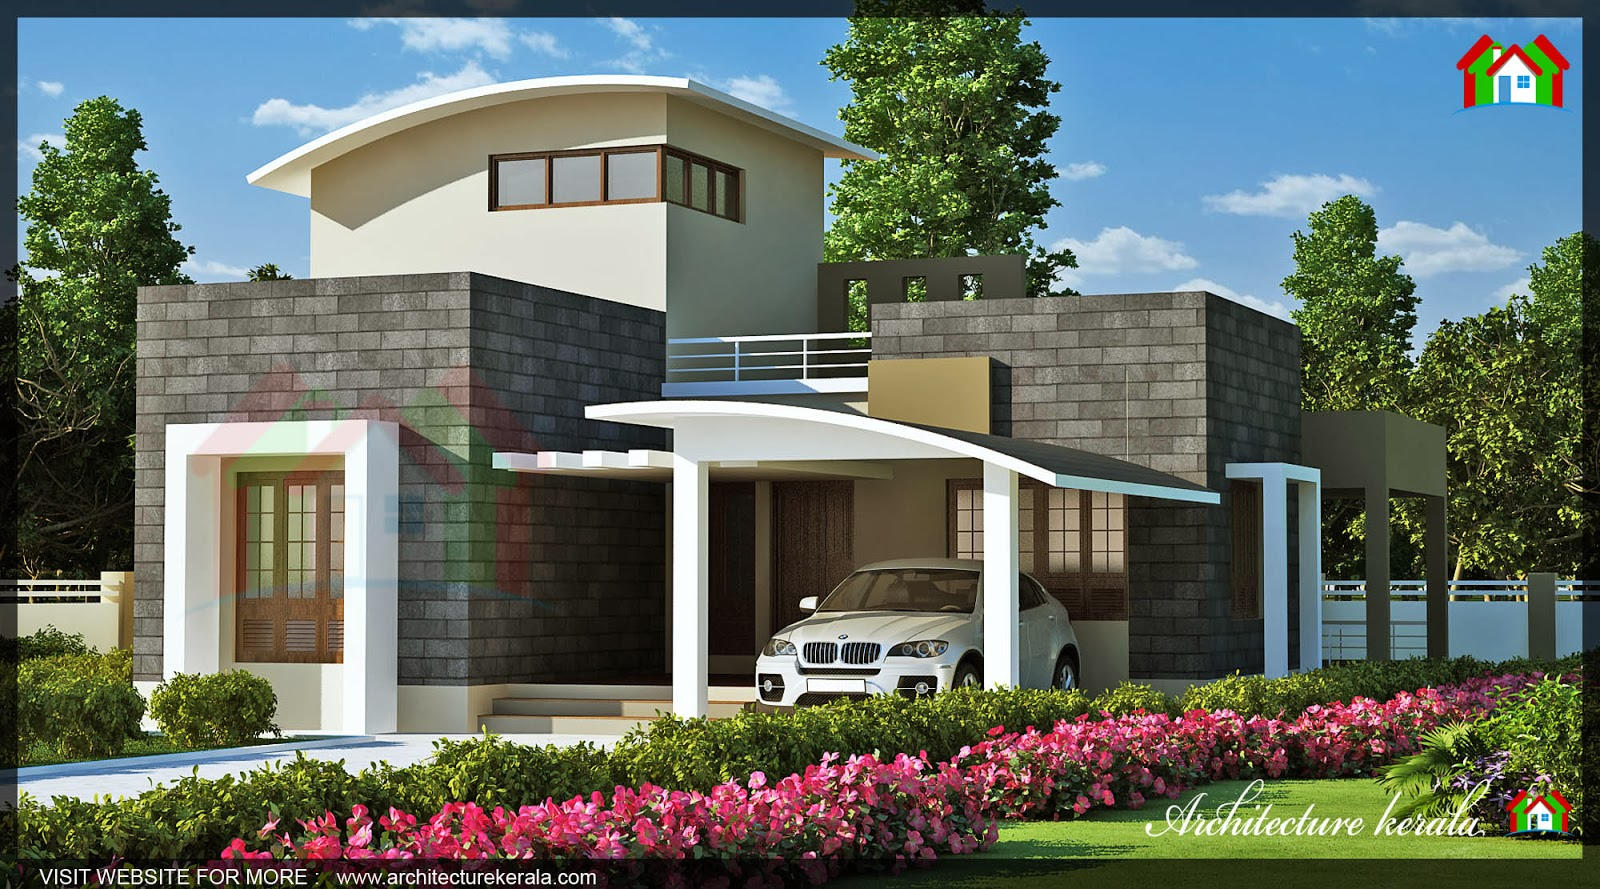 1600 square feet house elevation architecture kerala for 1600 square foot house